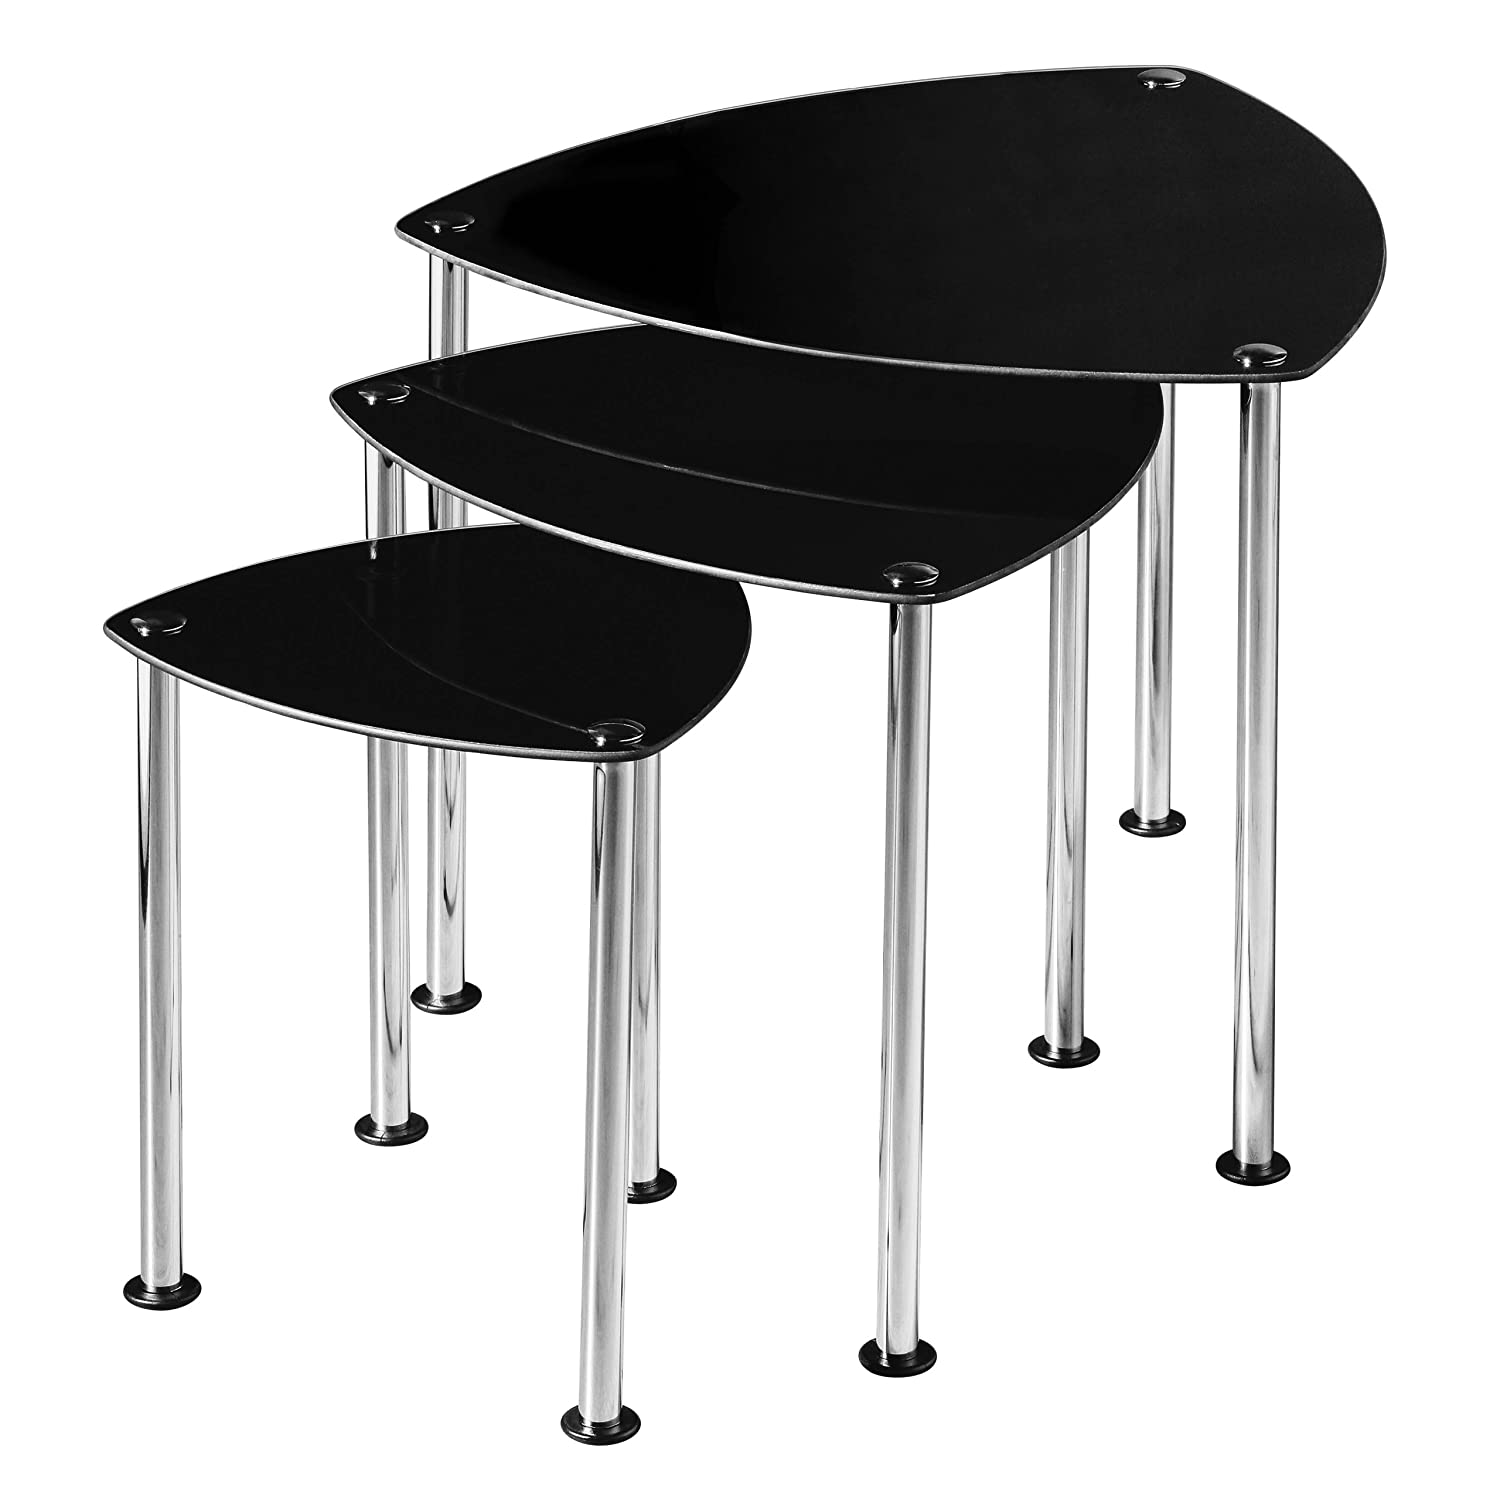 Coffee Table Black Glass Top Part - 49: Premier Housewares Nest Of 3 Tables With Black Glass Top And Chrome Legs,  43 X 48 X 48 Cm: Amazon.co.uk: Kitchen U0026 Home